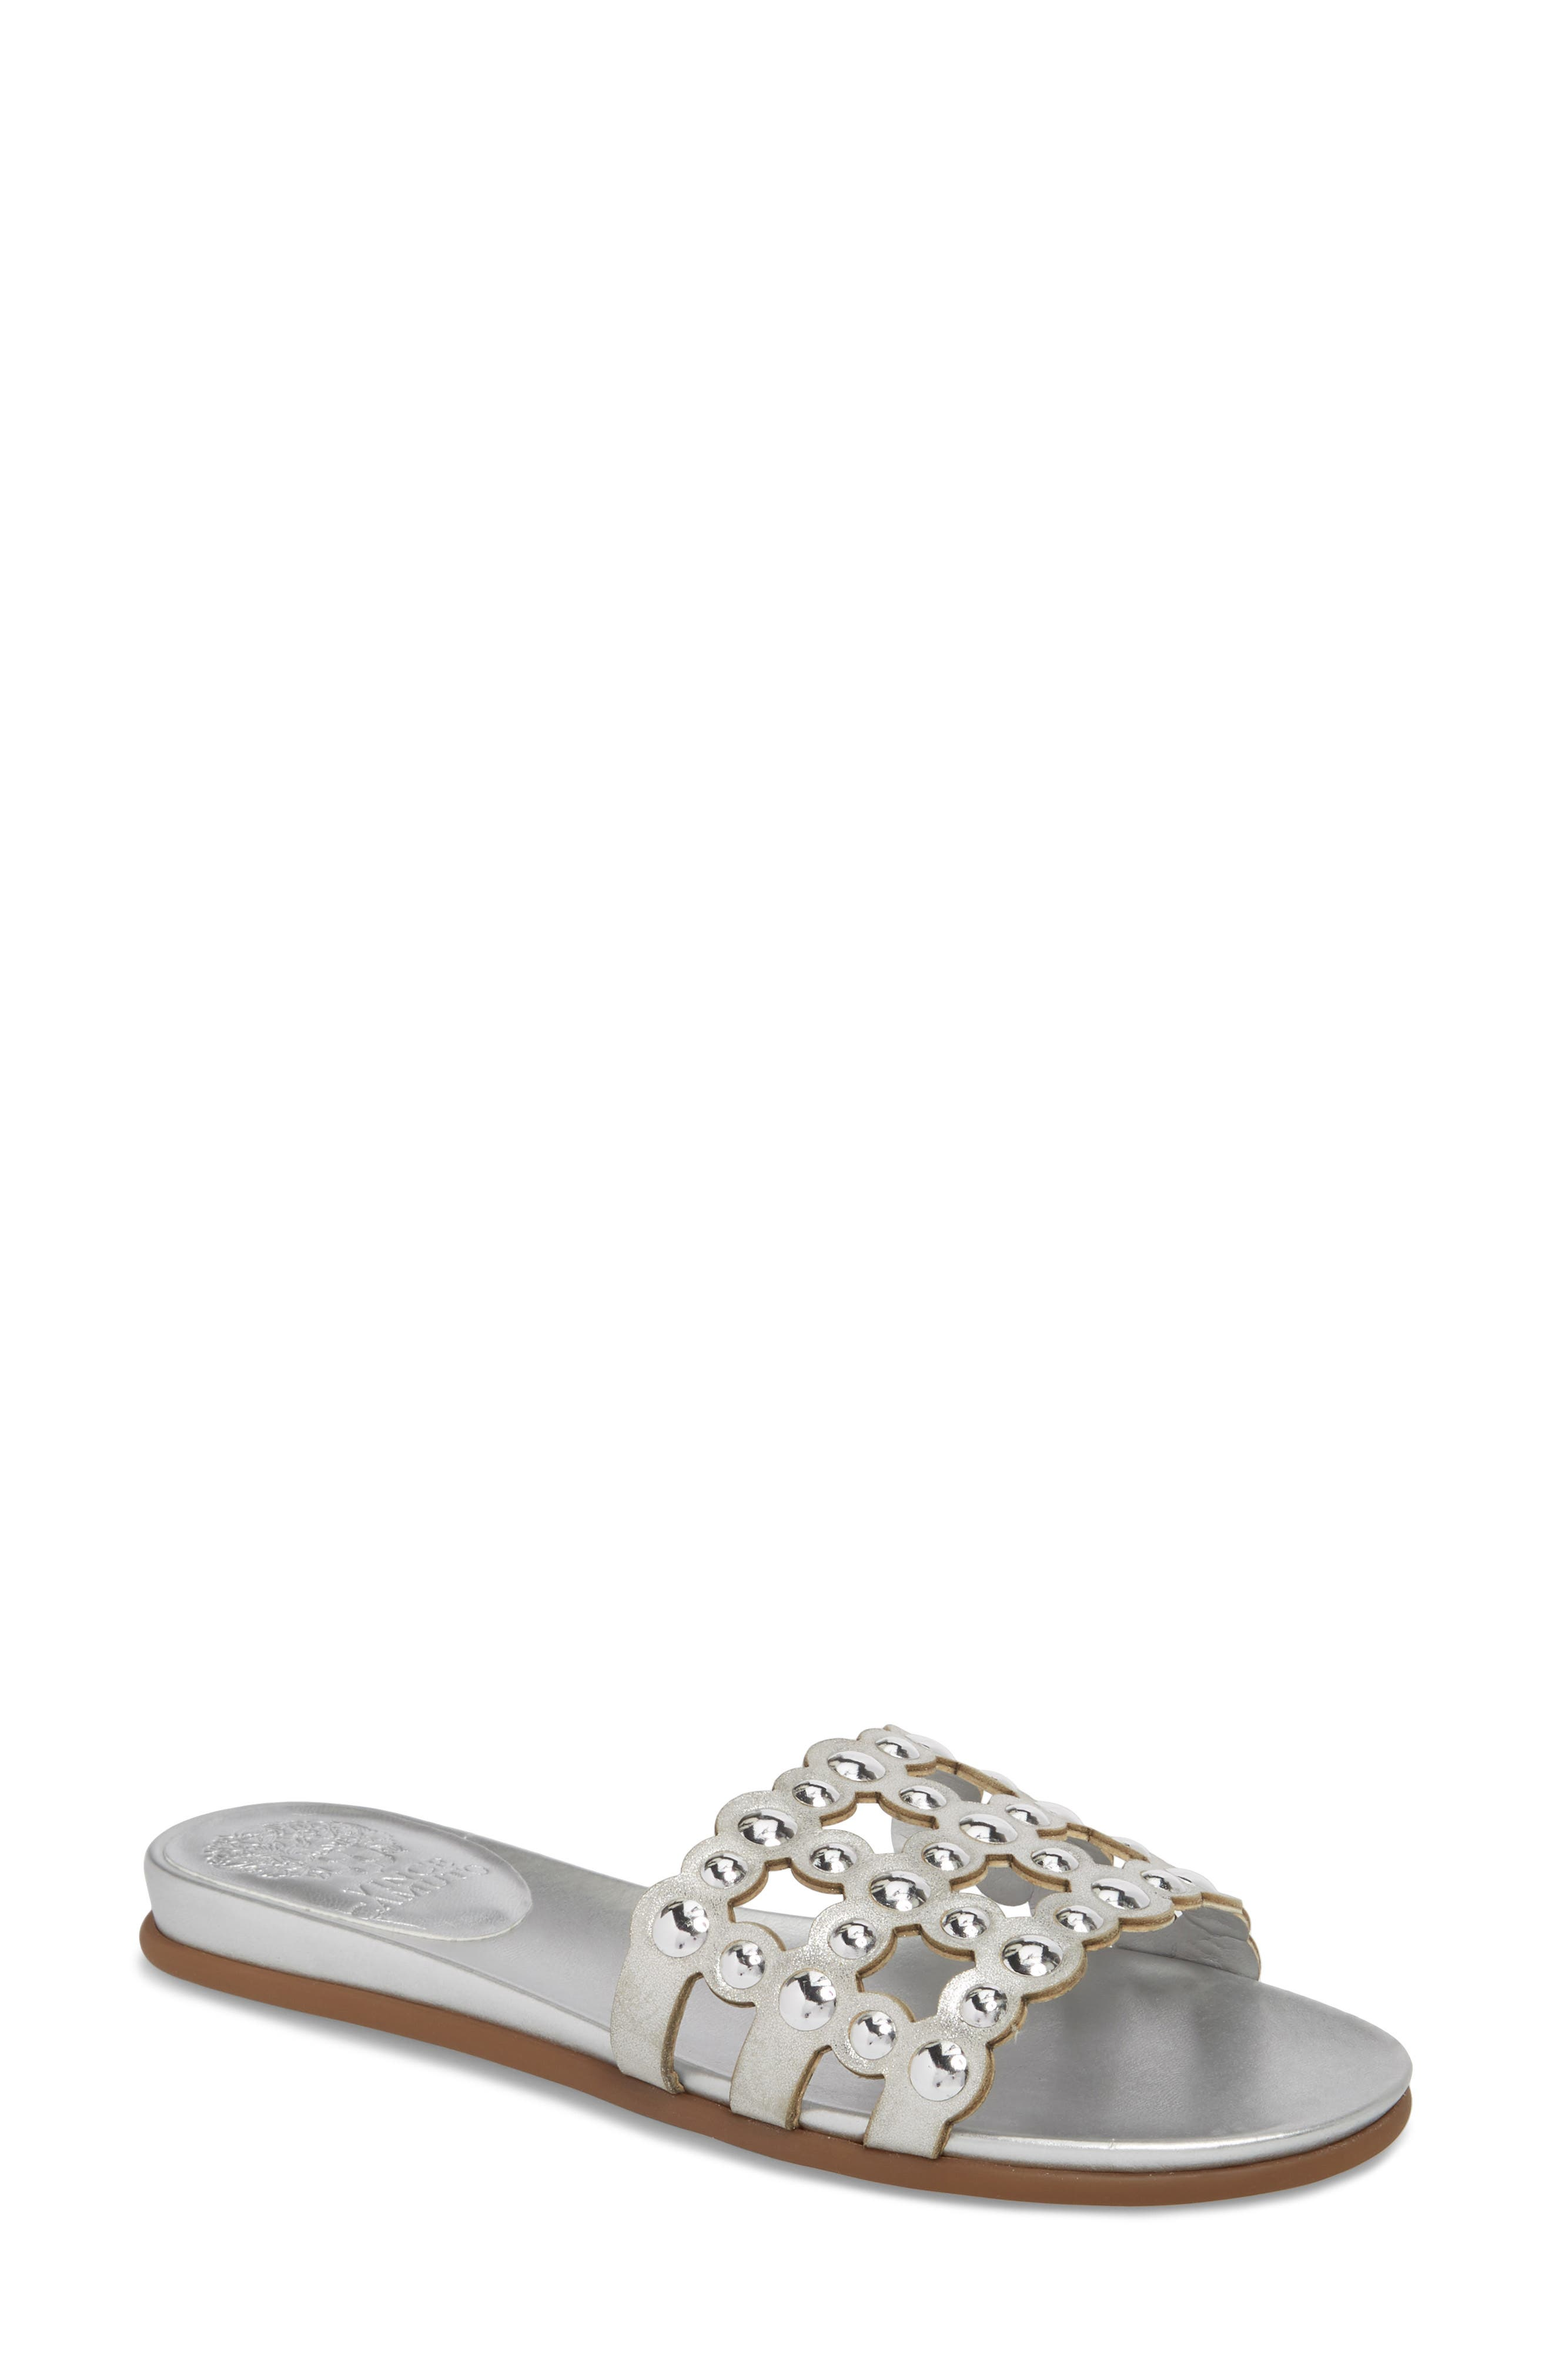 Ellanna Studded Slide Sandal,                             Main thumbnail 1, color,                             GLEAMING SILVER LEATHER